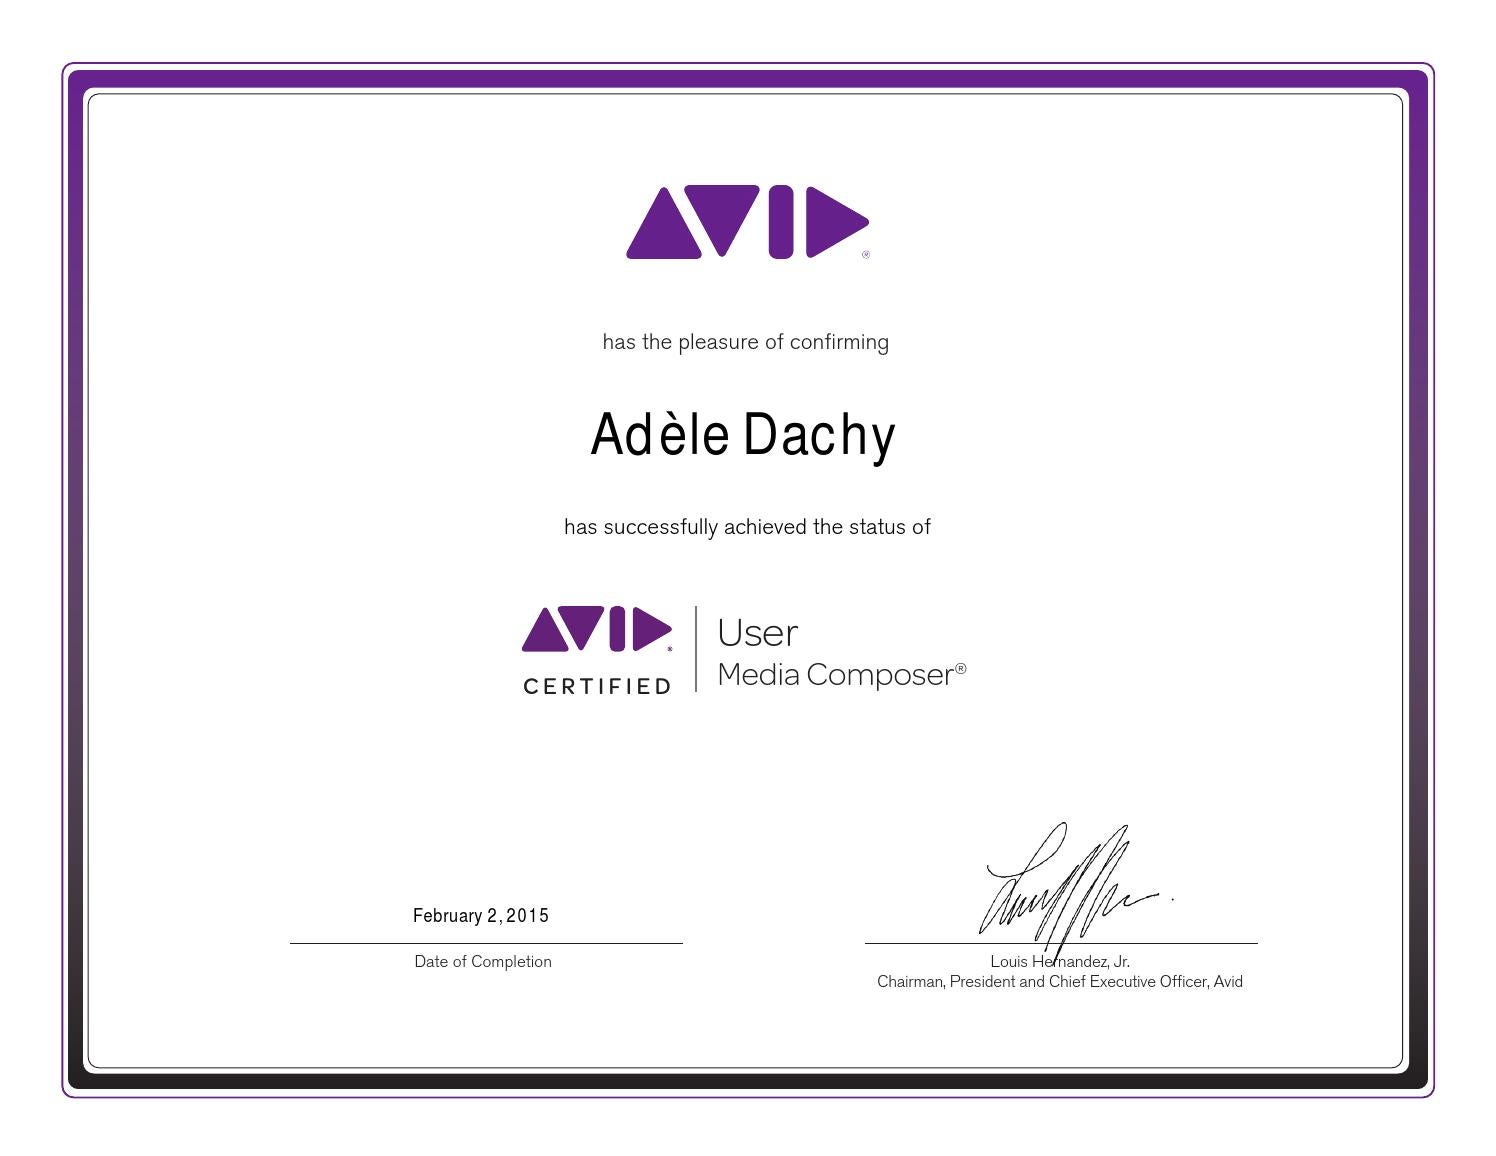 Avid Media Composer Certificate Ad By Adle Dachy Issuu